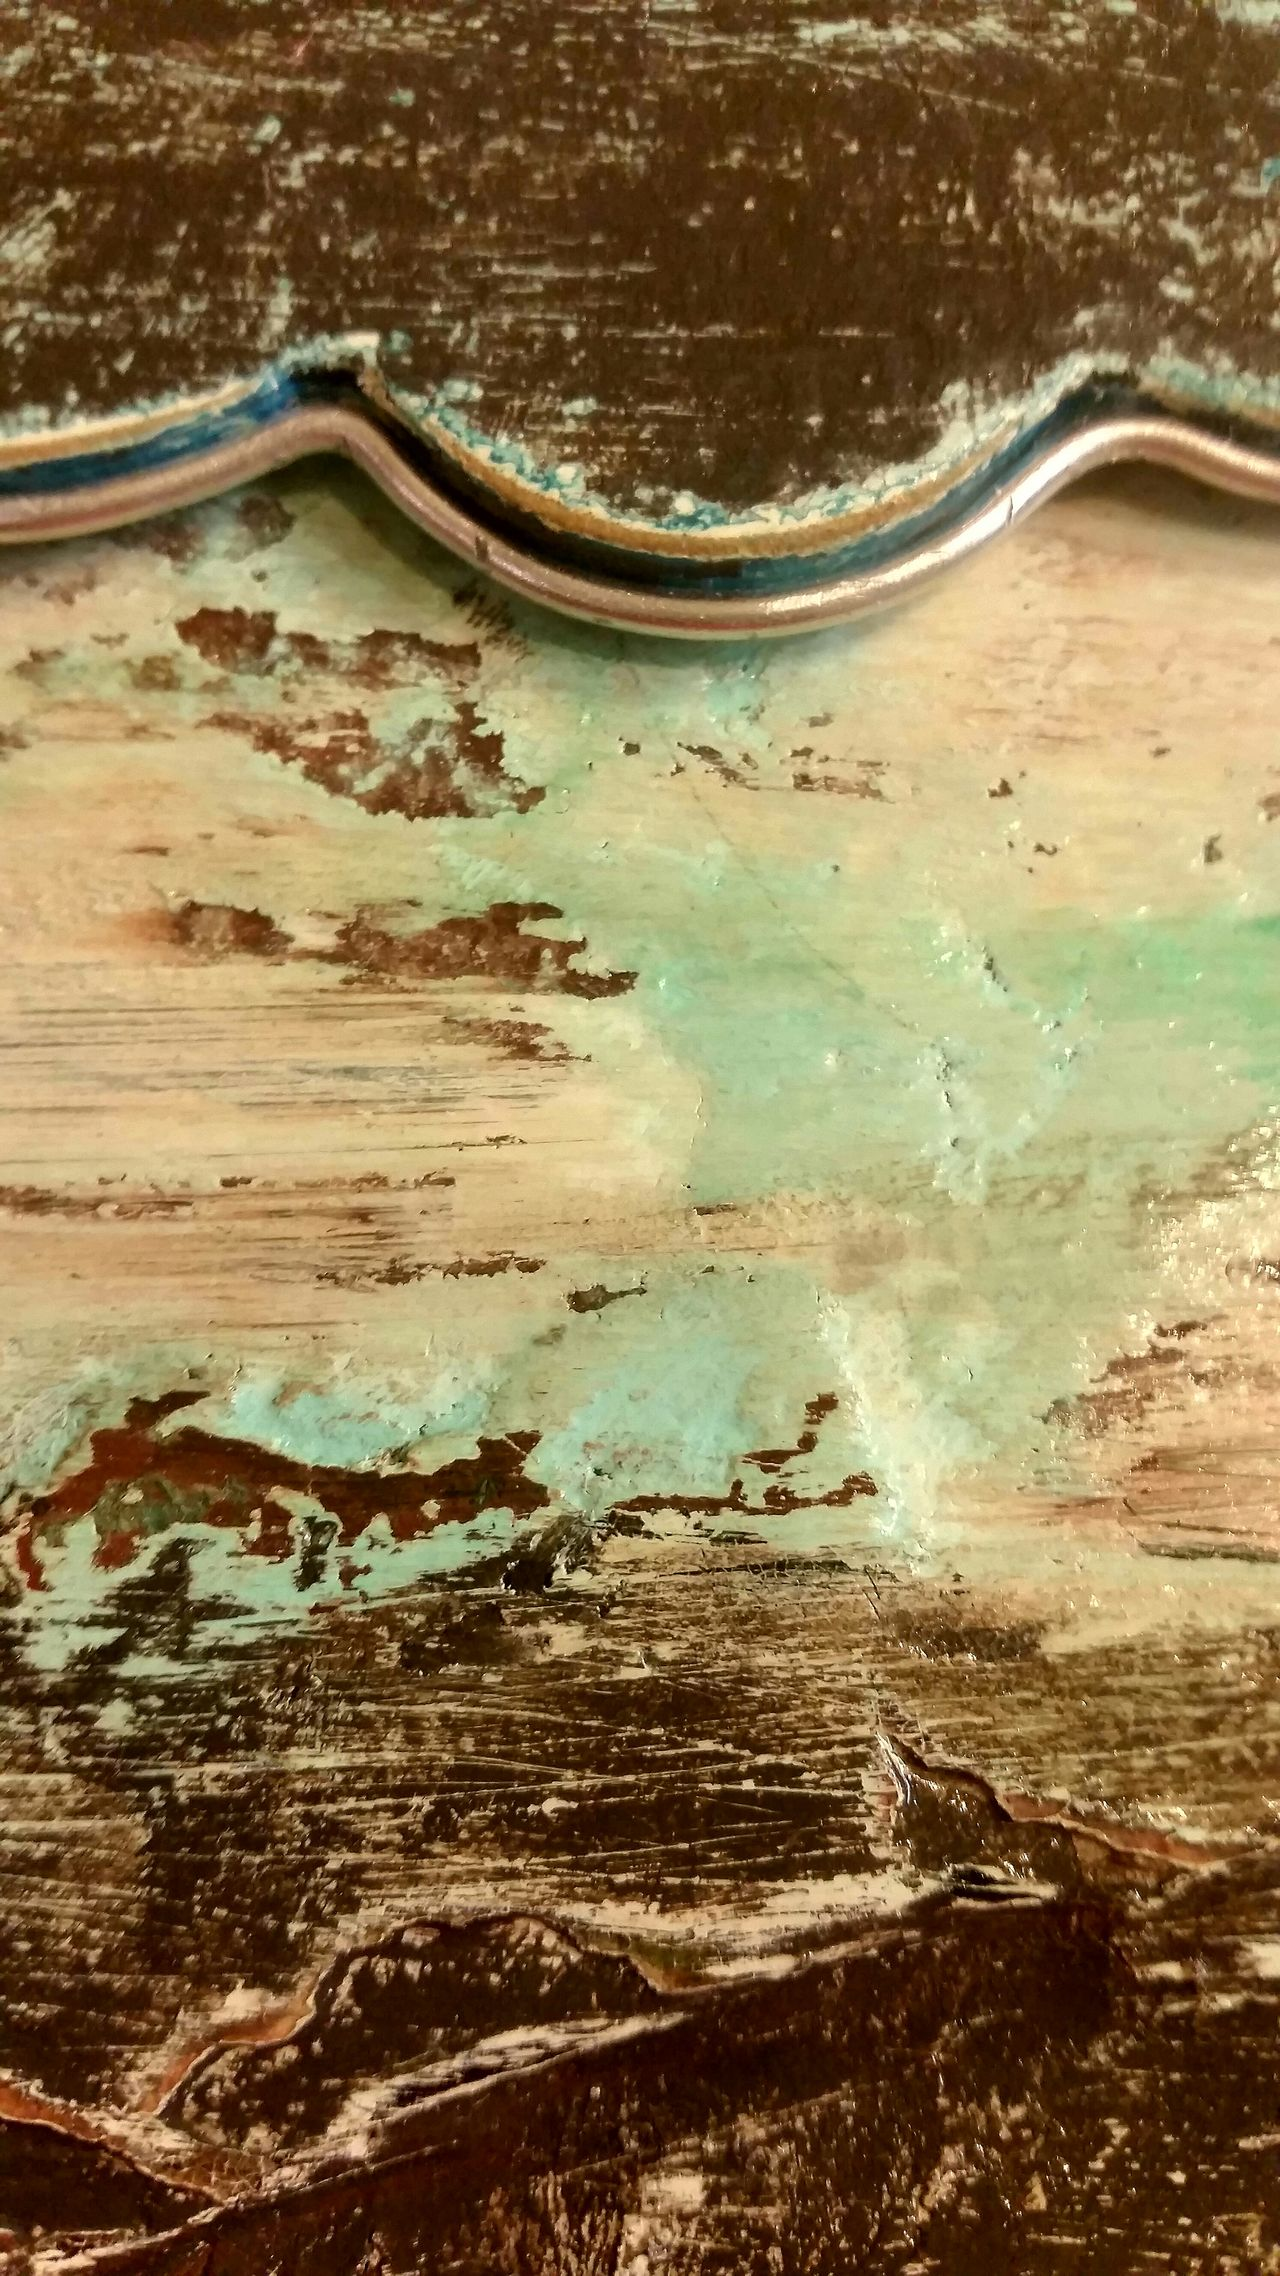 My latest texture creation.Abstract Textured  Textures And Surfaces Old House Paint Decay Nature_perfection No People Close-up Old Wood